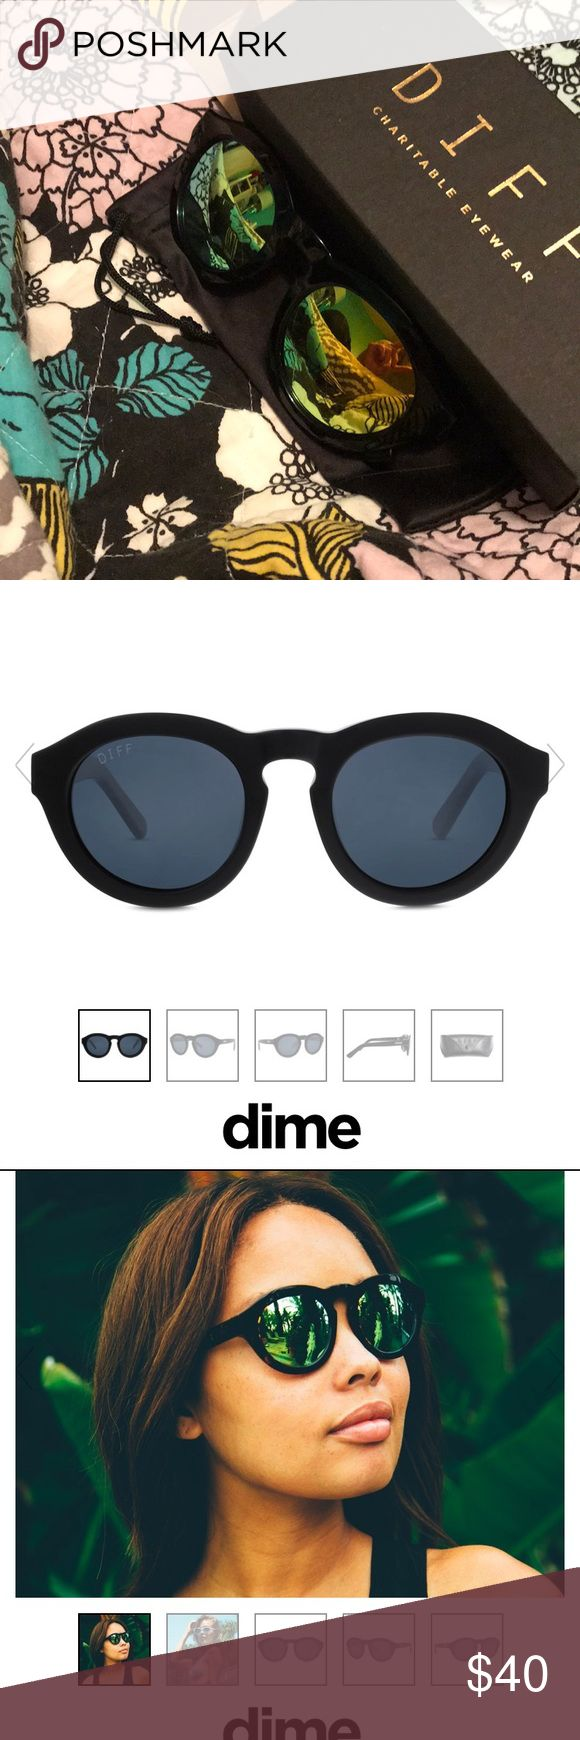 Dime polarized glass black gold mirror sunglasses Brand new never worn, comes in original box and protective sleeve.  Designer hand cut acetate frames featuring stainless steel 5-barrel hinges  Polarized lens with 100% UVA/UVB Protection  Premium scratch resistant lenses  Lens 48mm Width x 43mm Height  Frame 143mm Width; 16mm Bridge; 145mm Temple Length Diff Eyewear Accessories Sunglasses